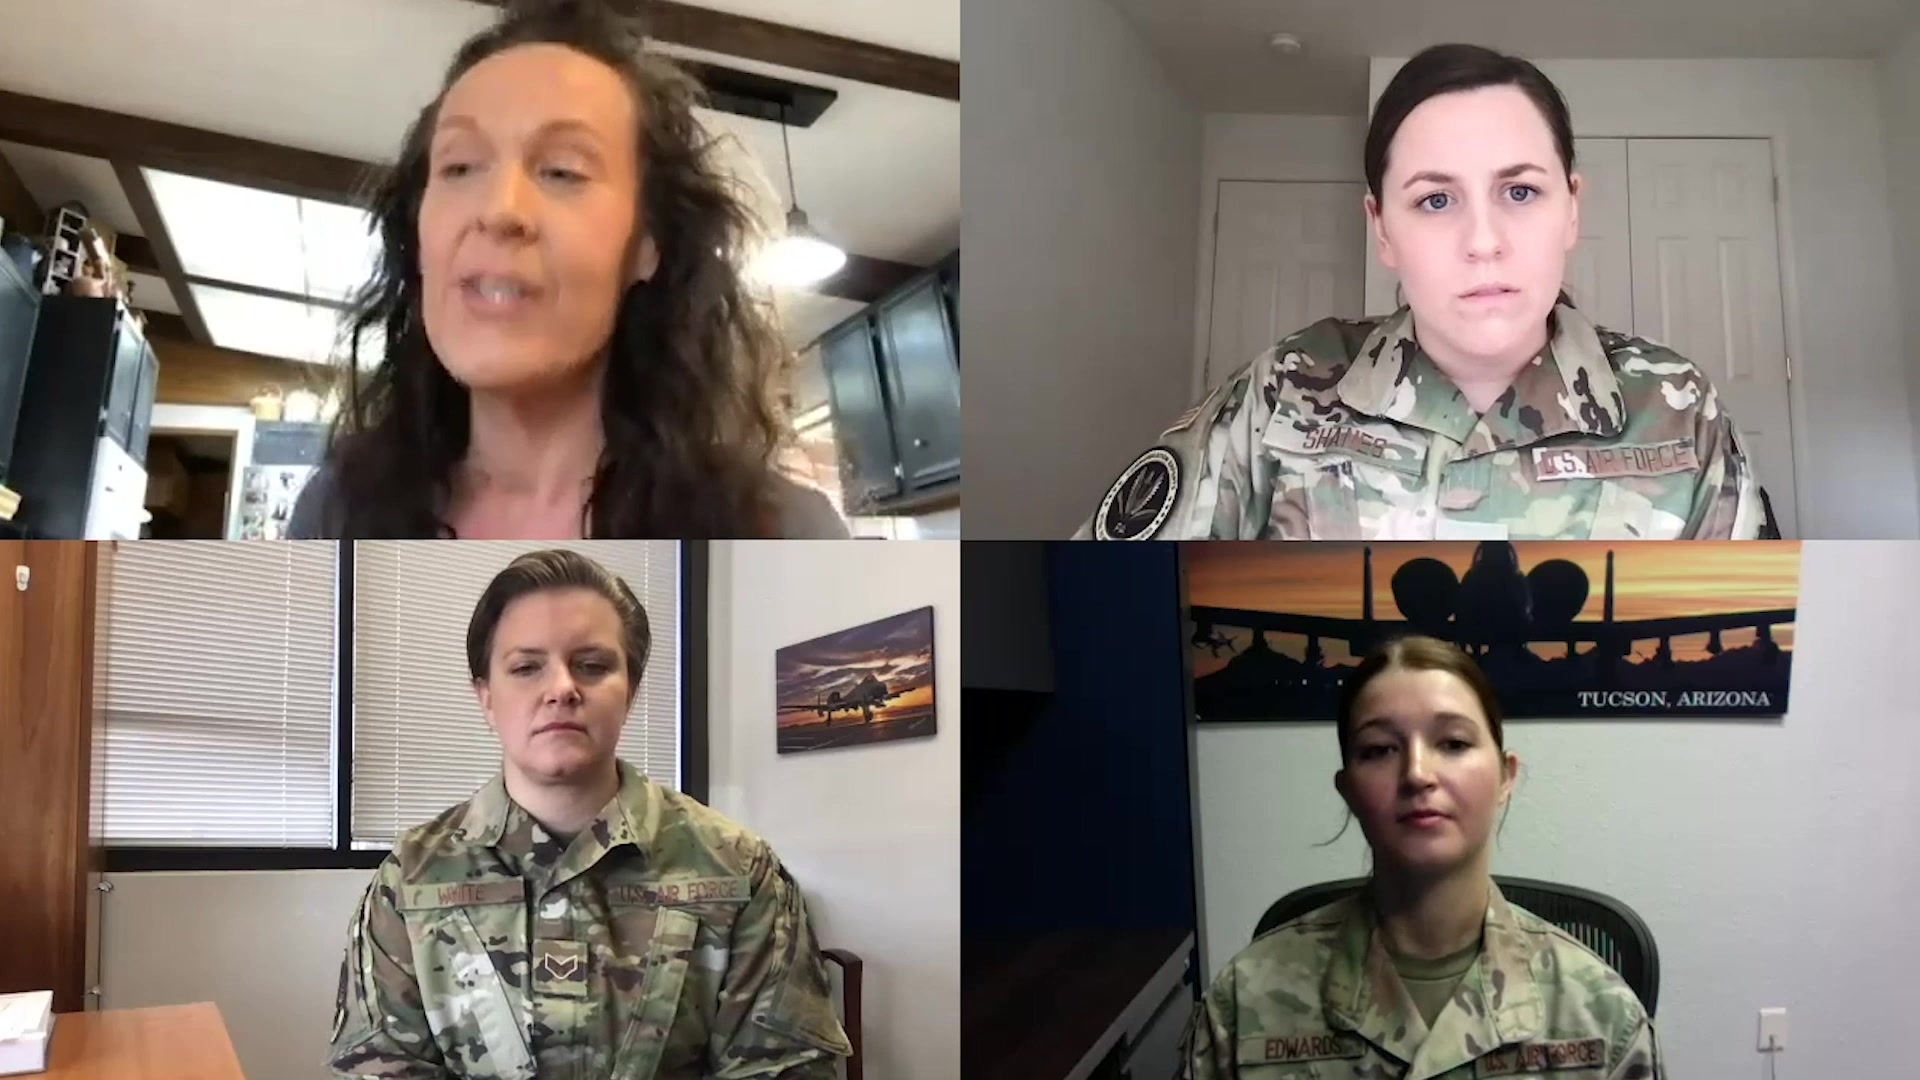 Vidoe of former A1C speaking to three current Airmen about sexual harassment she experienced